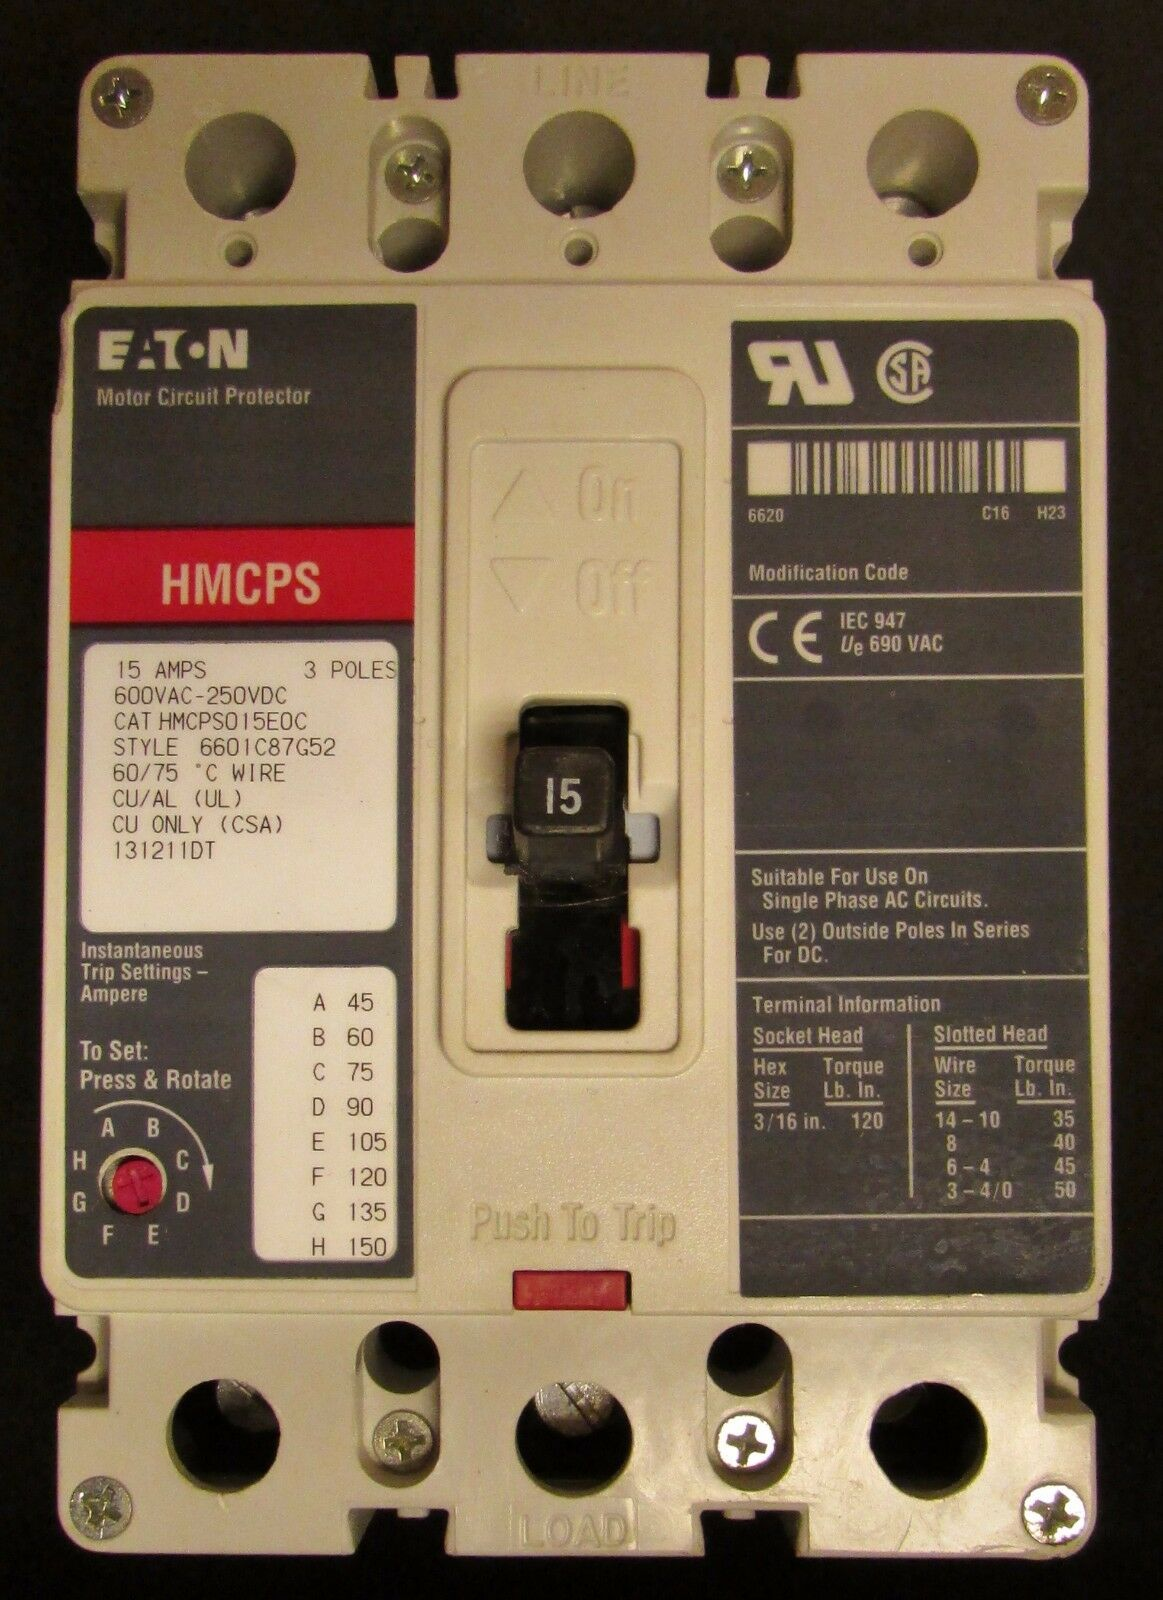 Eaton Cutler Hammer Hmcps Motor Circuit Breaker 15 Amp 3 Pole Electric Breakermotor Product On Hmcp015e0c 1 Of 3only Available